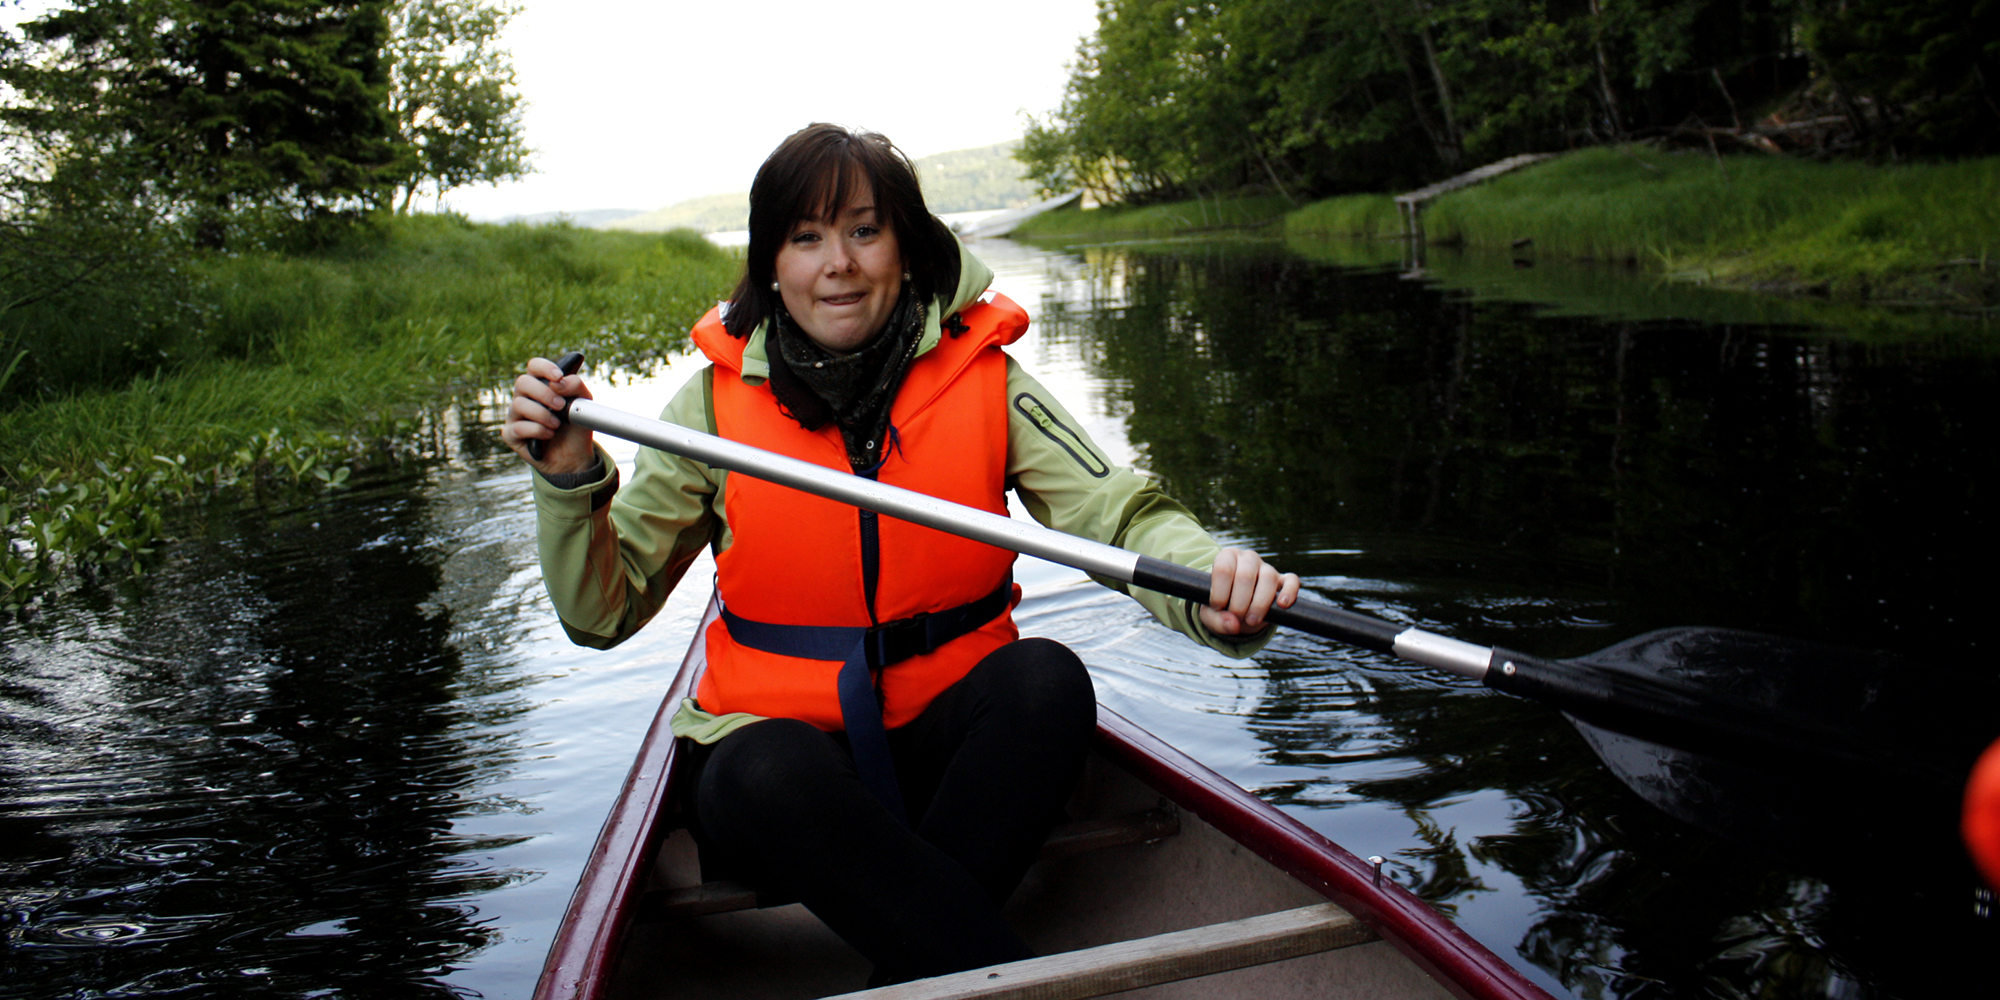 Canoeing at Lake Snåsa by Føllingstua. Copyright: Føllingstua